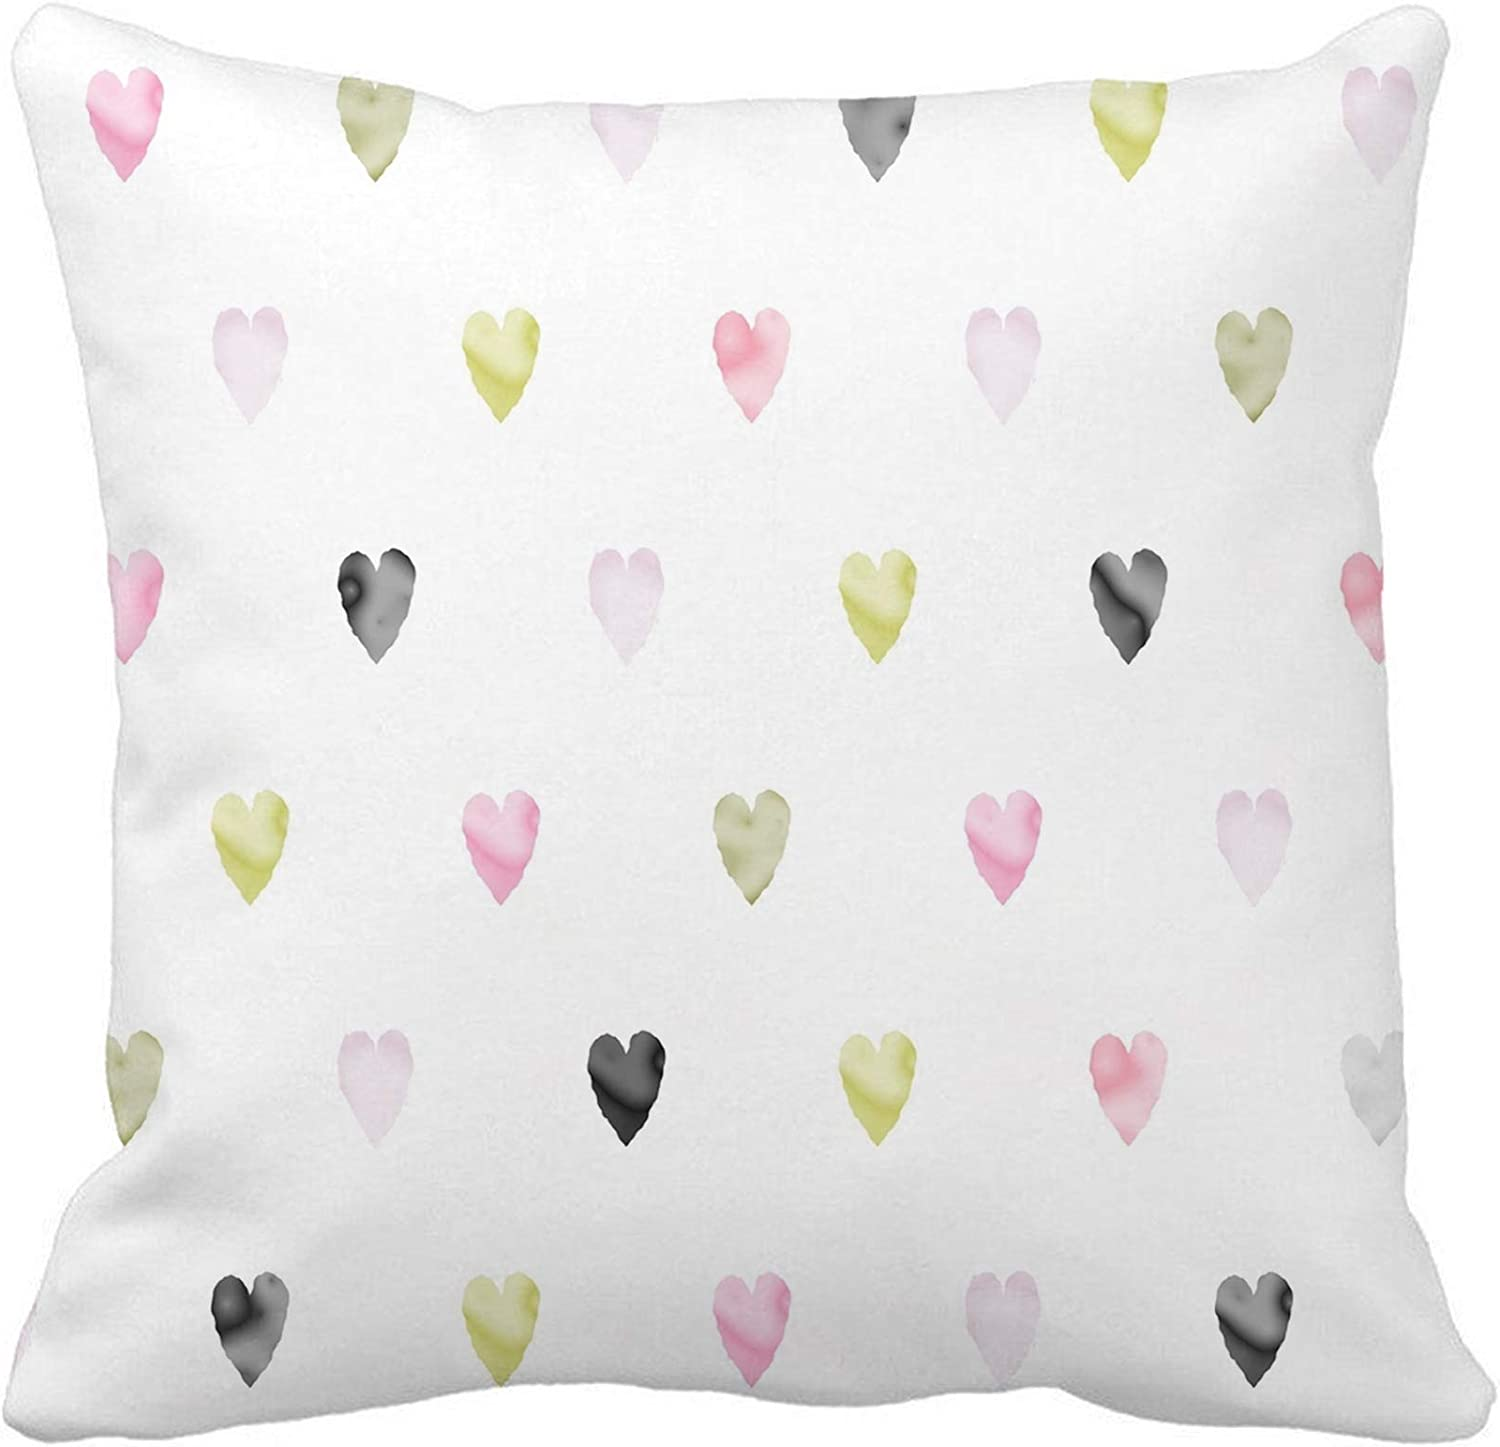 Awowee Throw Pillow Cover Watercolor Hearts Pattern Tony Pink Gold Grey Beige 20x20 Inches Pillowcase Home Decorative Square Pillow Case Cushion Cover Home Kitchen